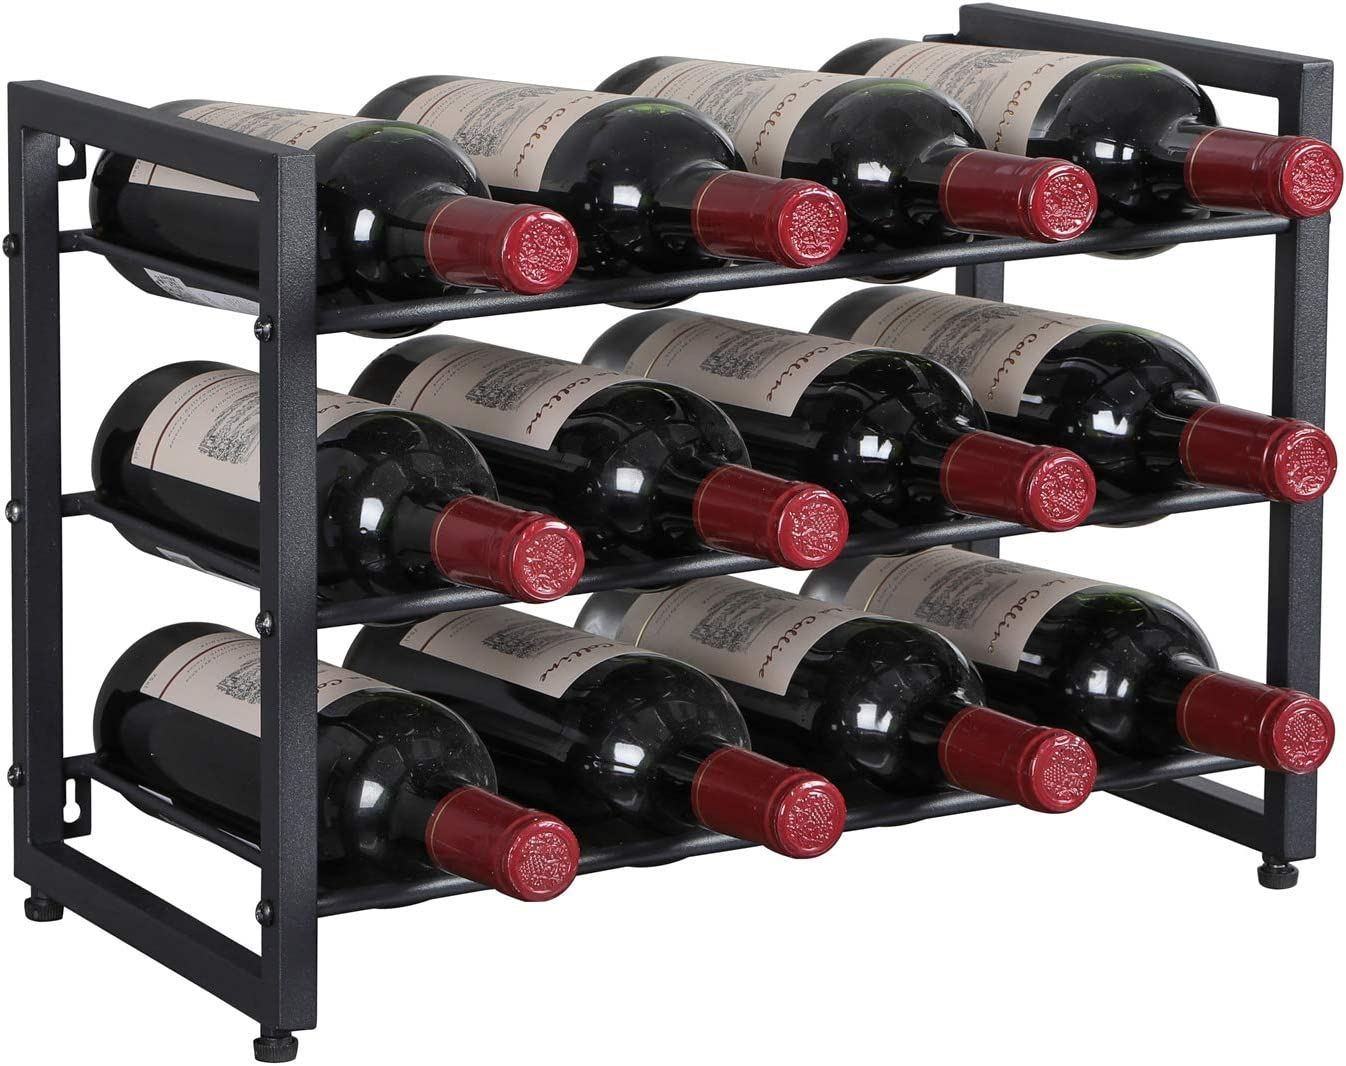 Oropy 12 Bottle Metal Wine Rack Free Standing Wine Storage Holder 3 Tier Industrial Style Vintage Home Decorations For Cabinet Cupboard Countertop Black Amazon Co Uk Kitchen Home